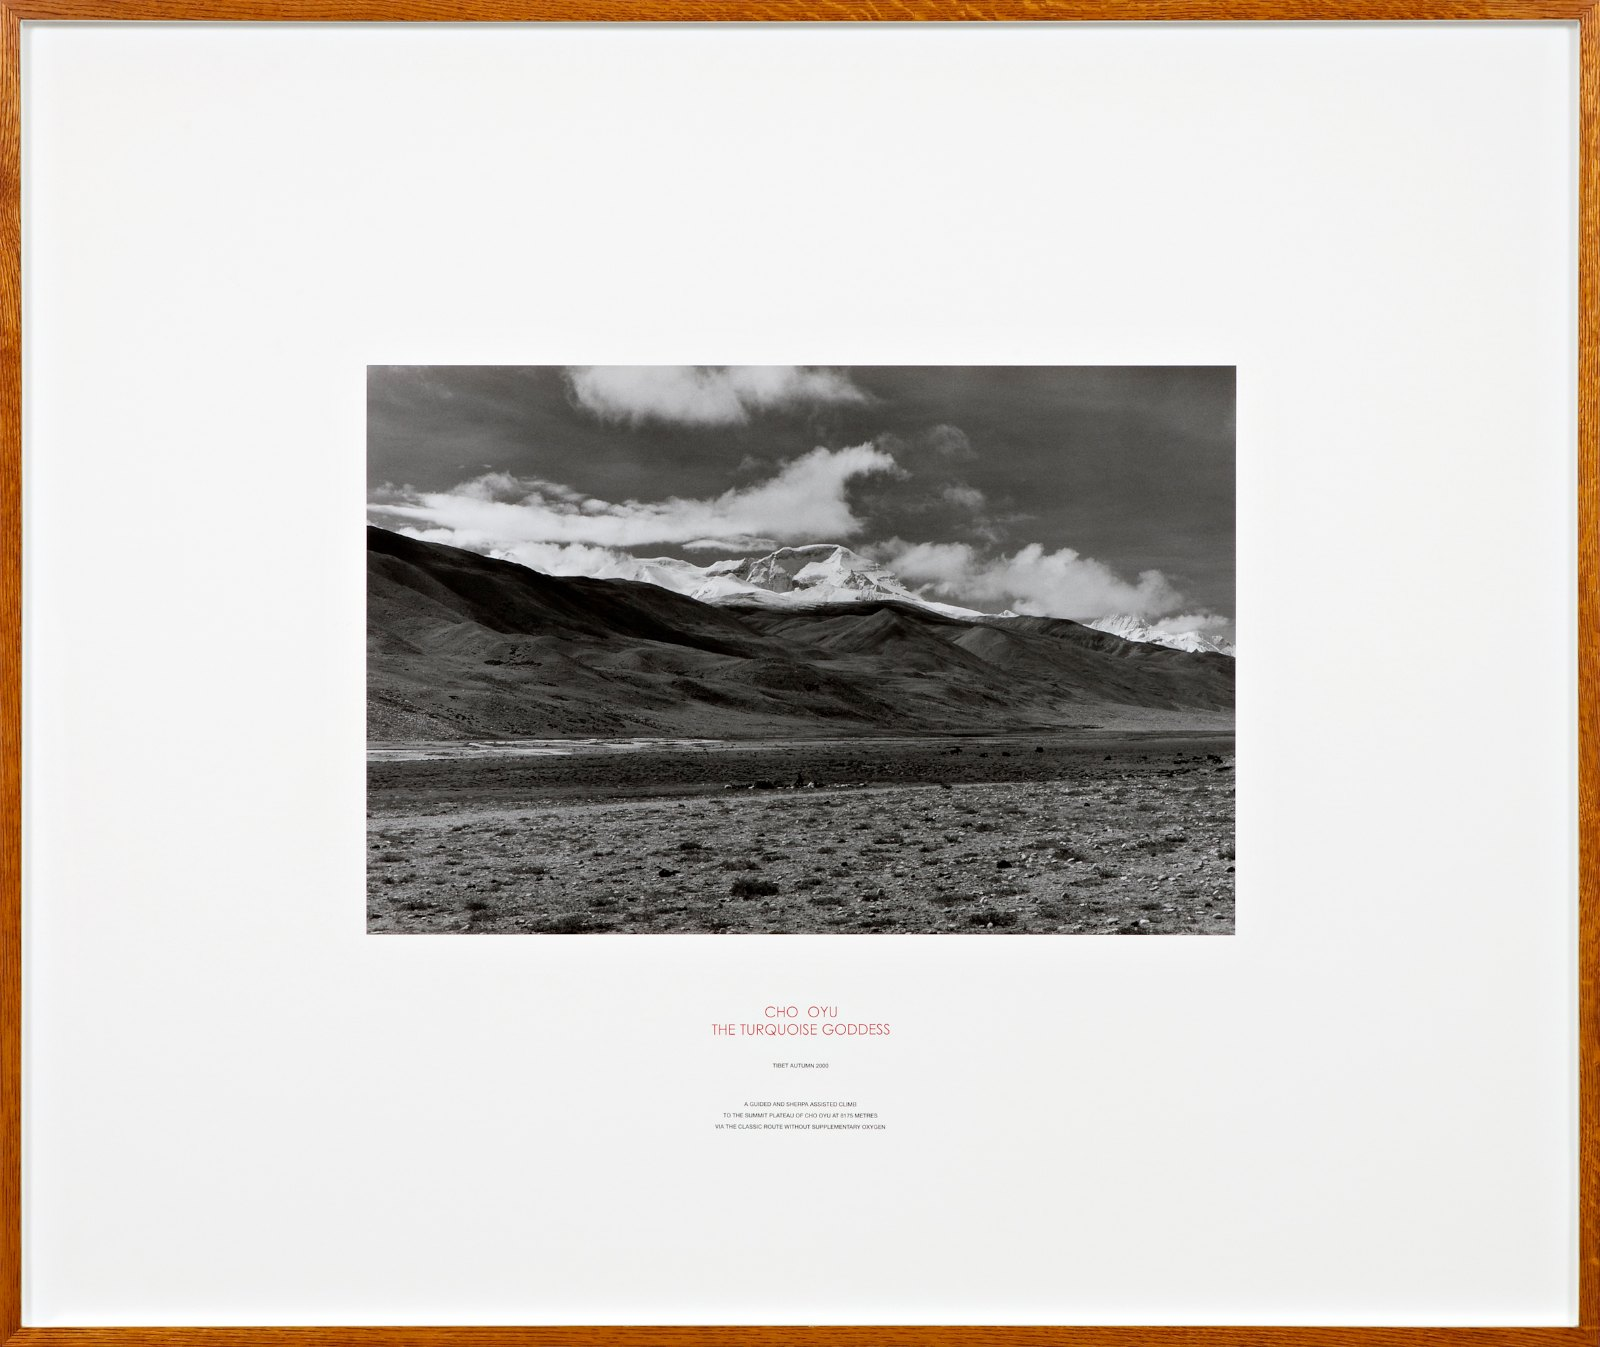 Cho Oyu, Tibet 2000, silver gelatin photograph and letterpress in artist frame, unique, 116,5 x 138,5 cm